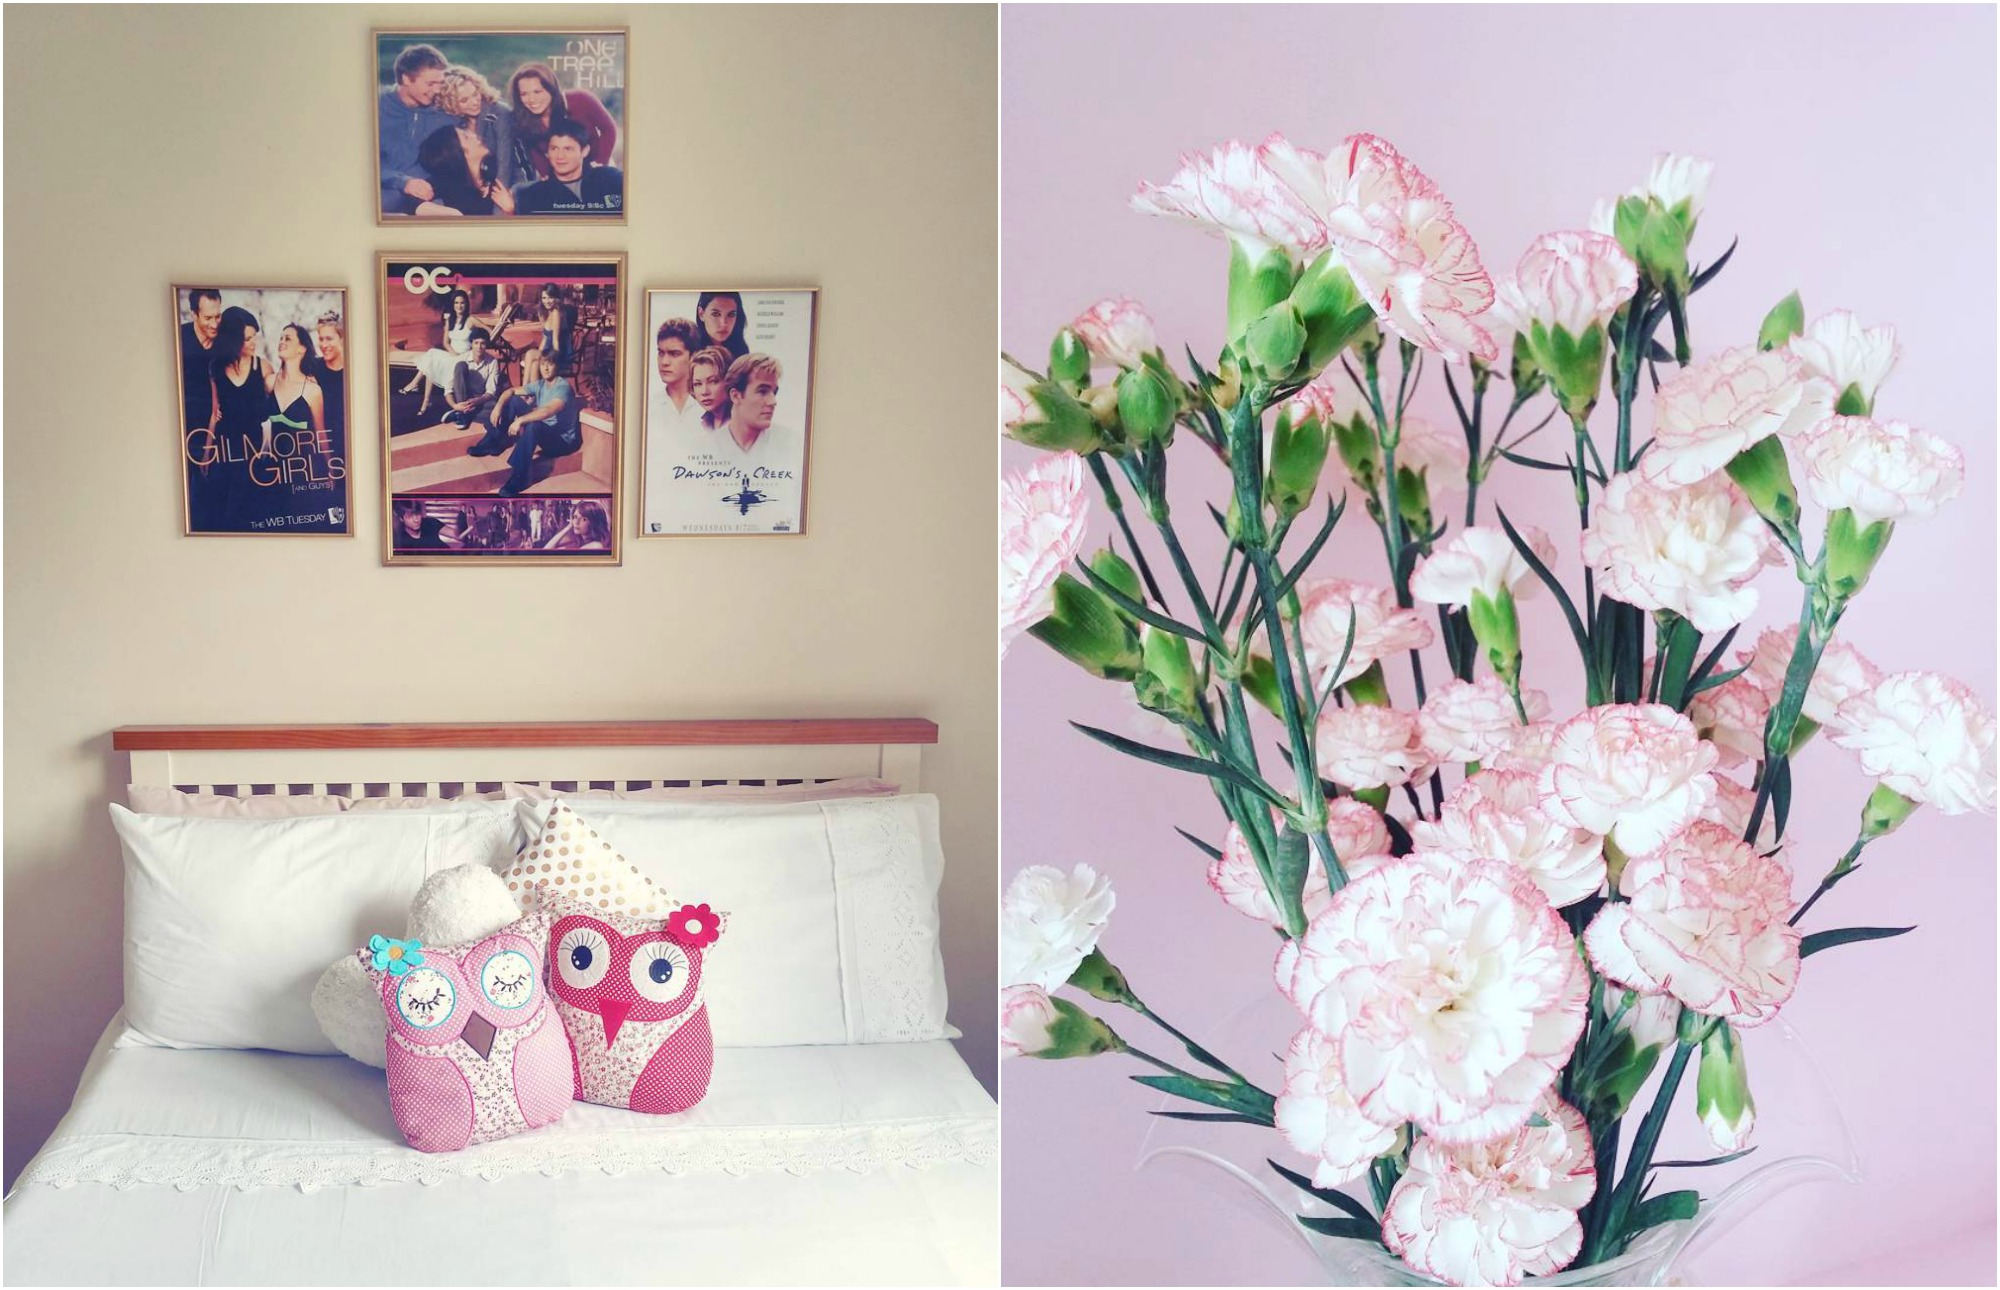 A photo of sunita's bedroom: Posters from One Tree Hill, Gilmore Girls, The OC, and Dawson's Creek on the wall, white duvet, and owl pillows. And a large bouquet of flowers.